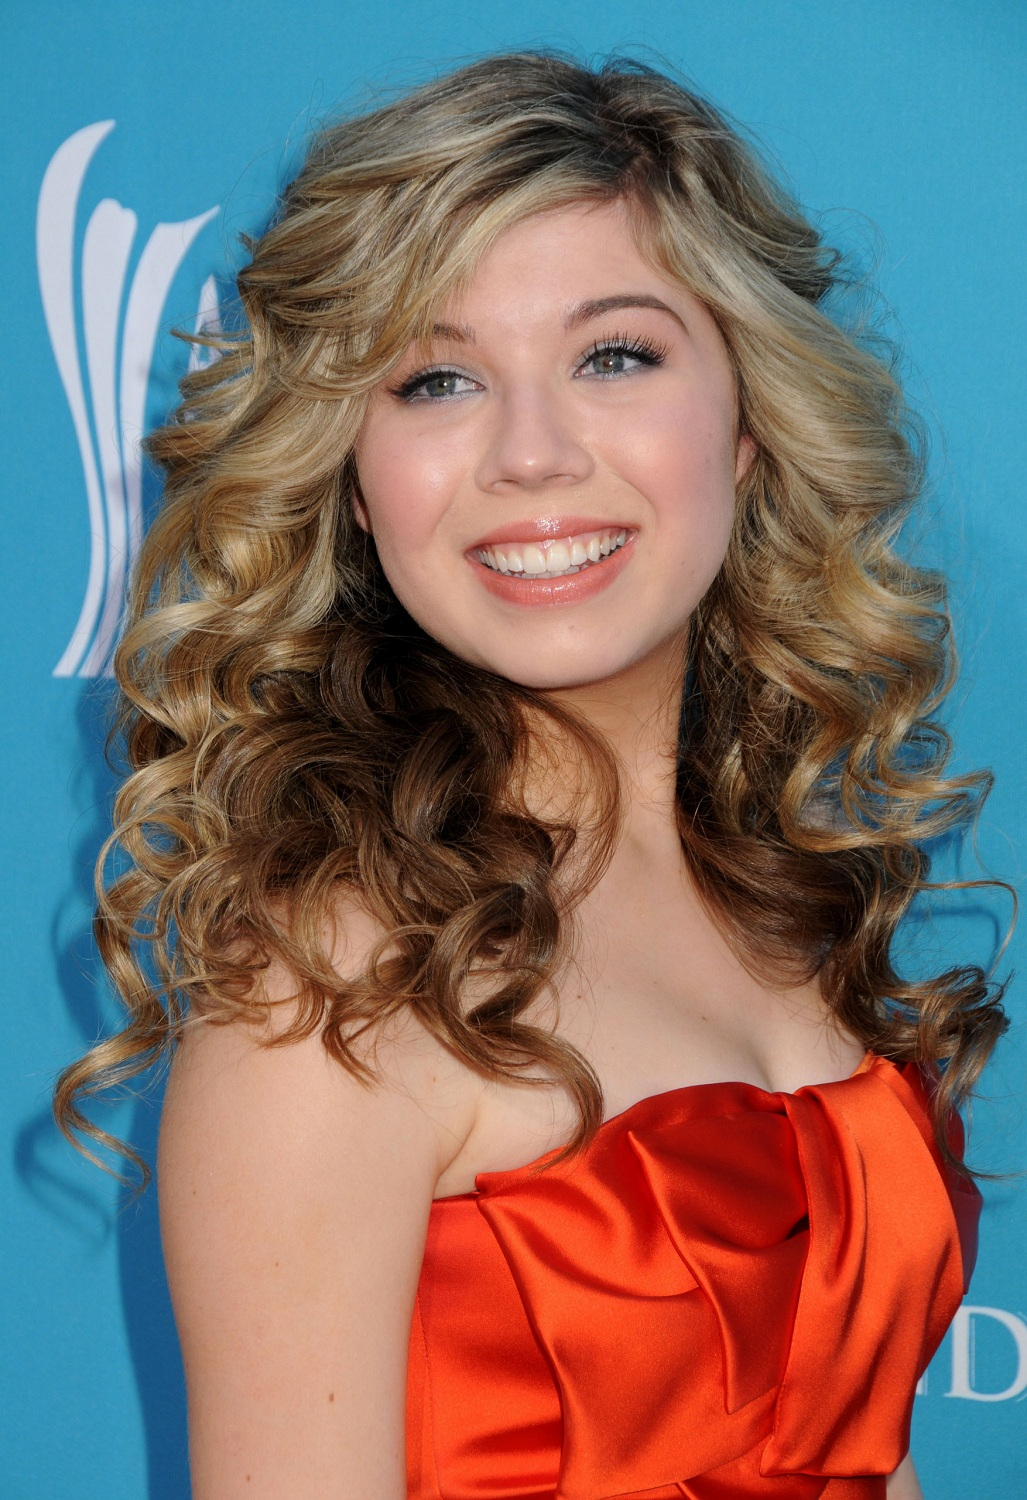 35 Jennette McCurdy Hot Bikini Sexy Pictures Expose Her